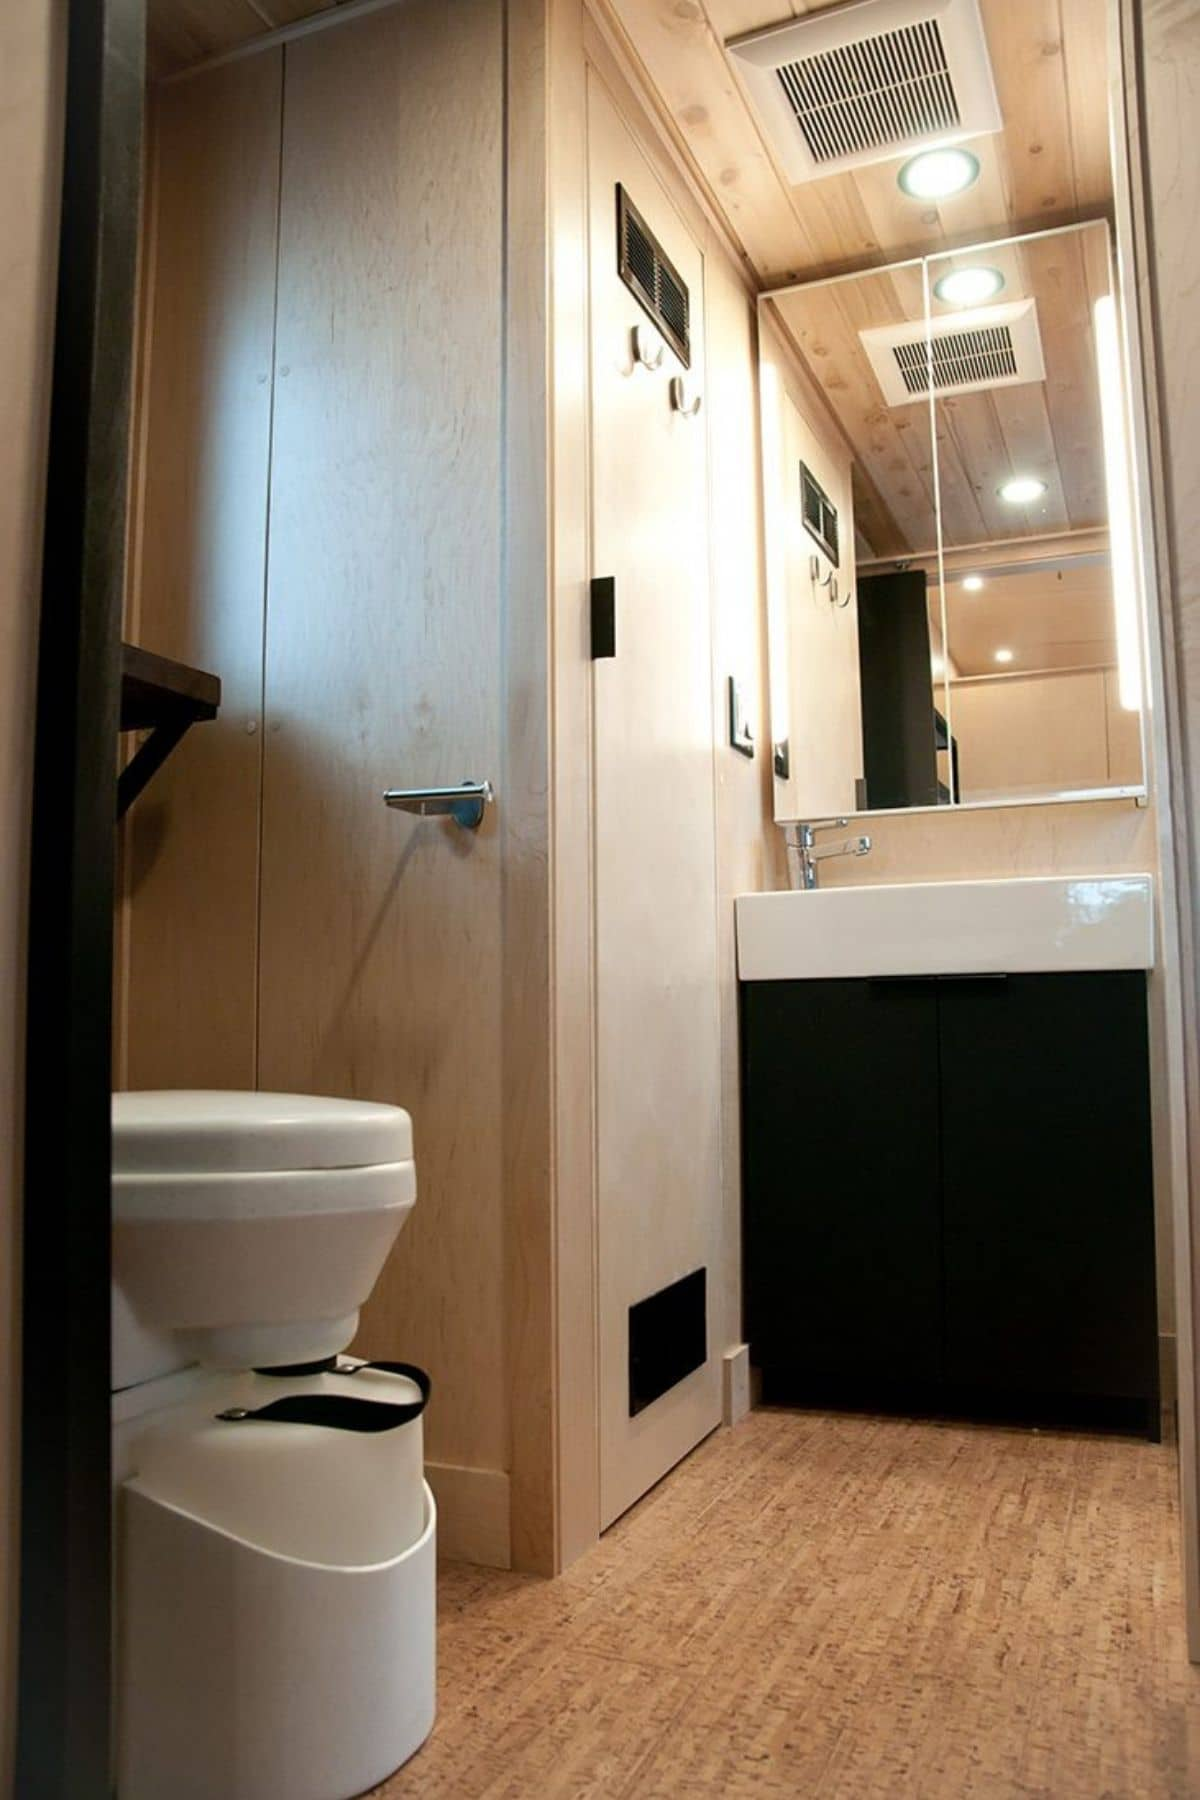 Compost toilet in foreground with closet and sink in background